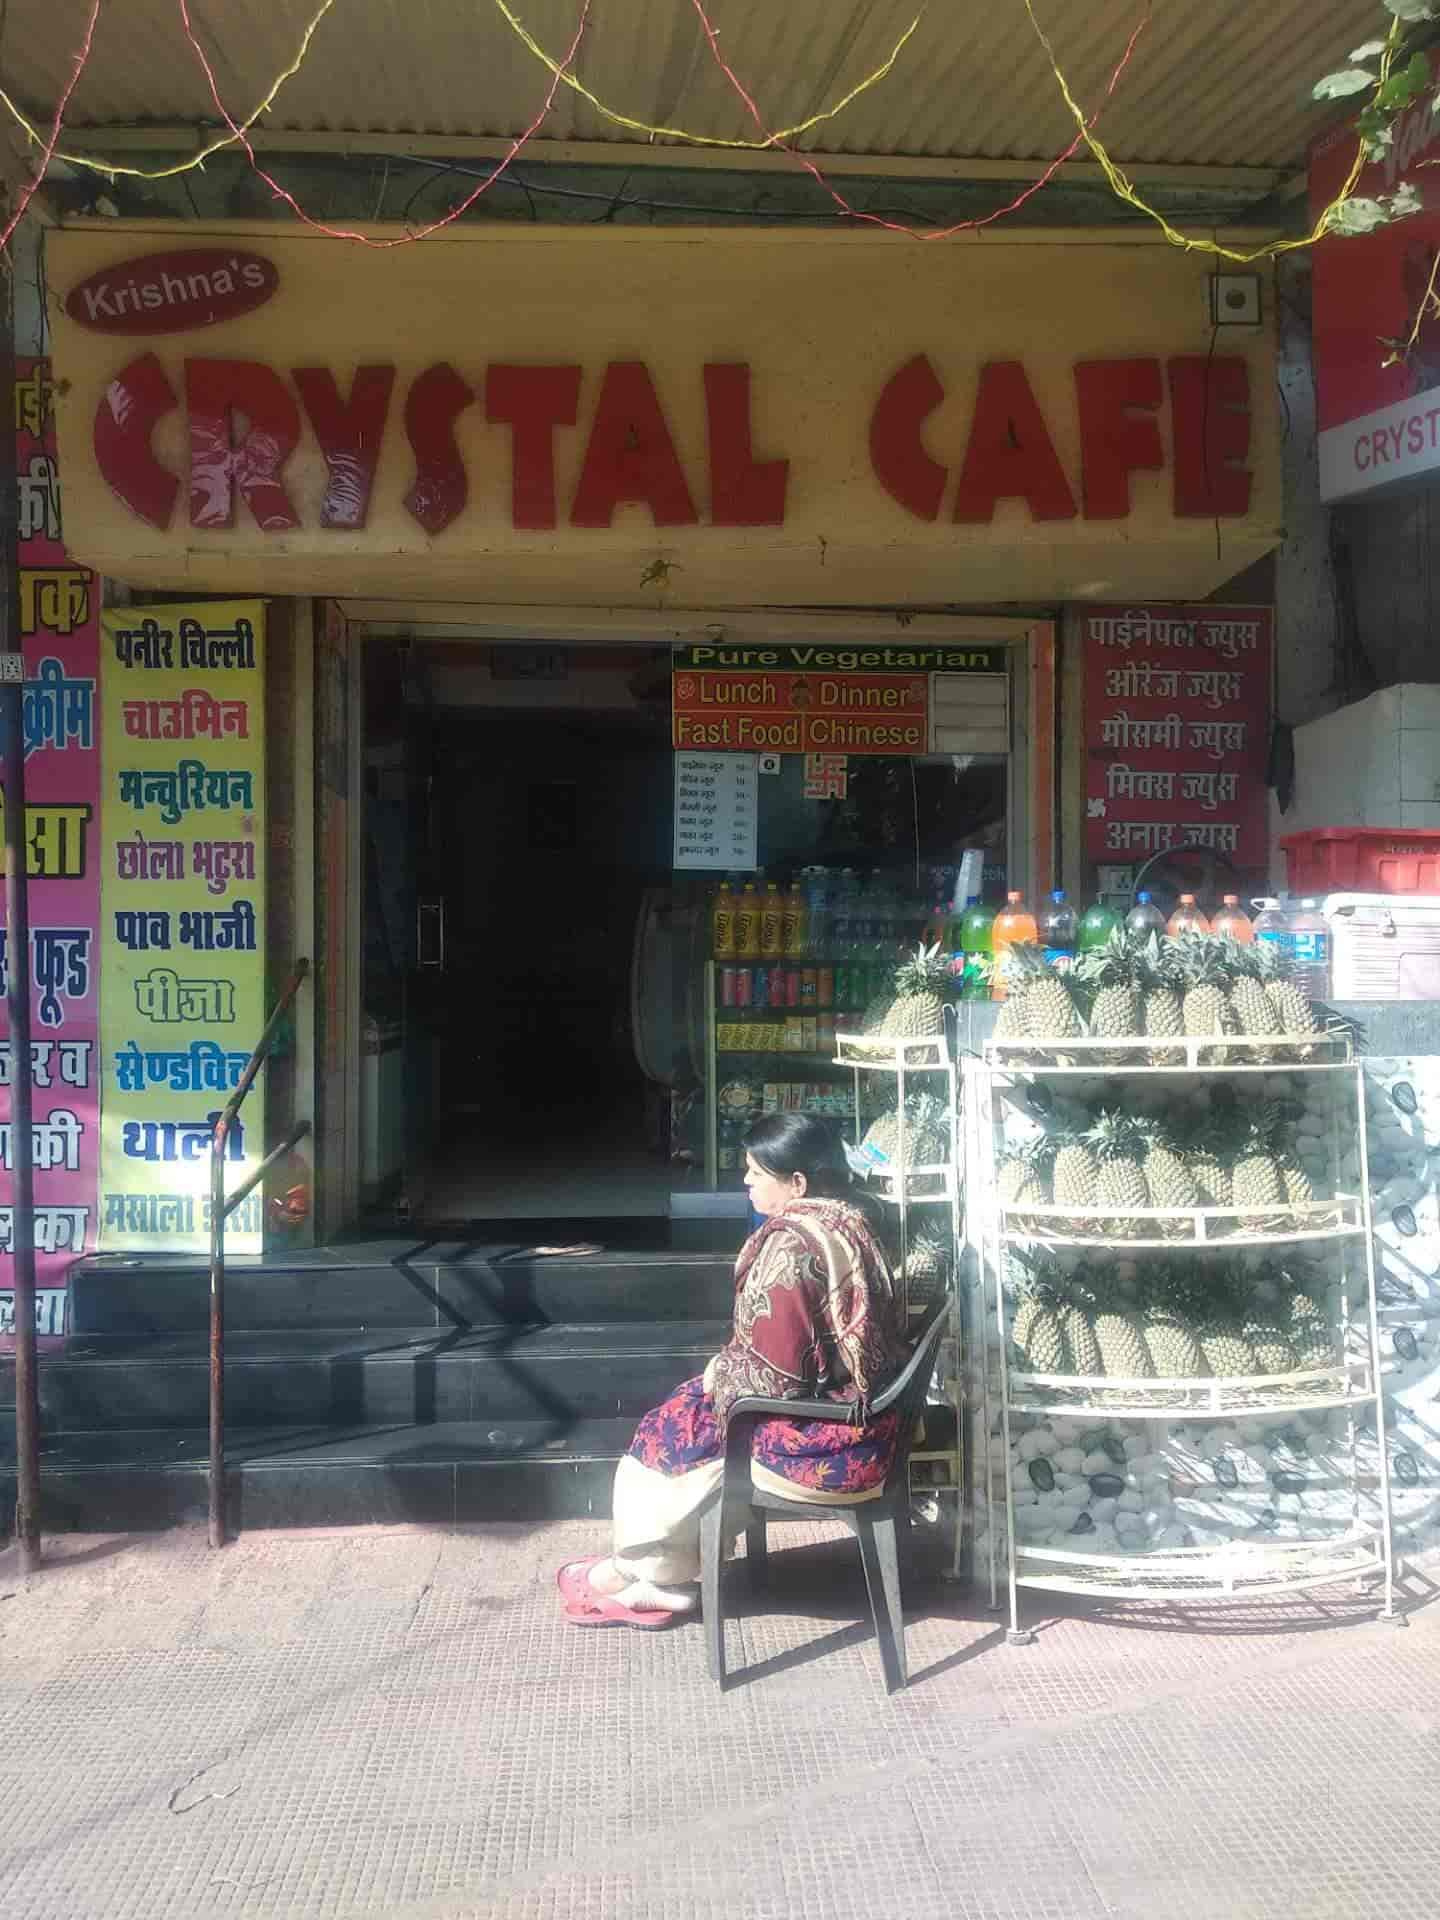 Crystal Cafe Restaurant Photos, Ashok Nagar, Udaipur